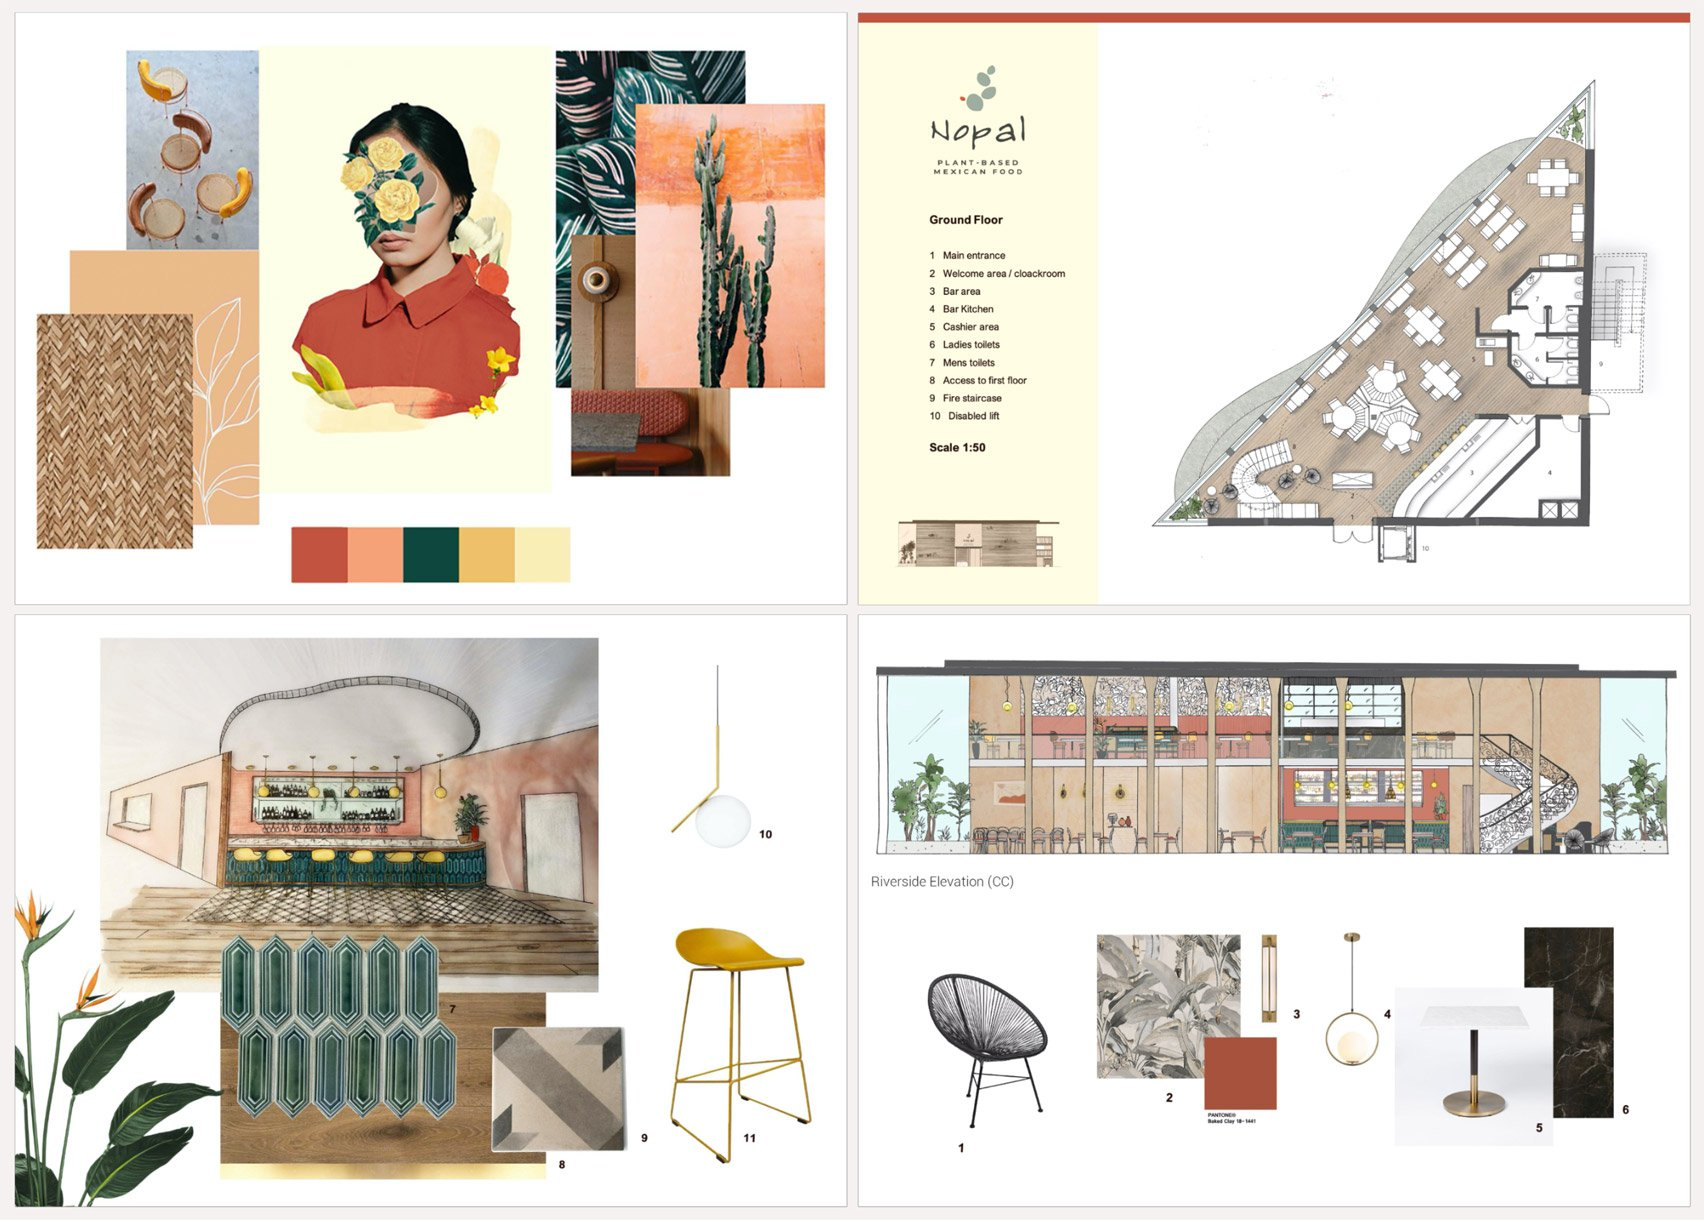 Interior Design Students At Chelsea College Of Arts Present Conceptual Restaurant And Bar Designs Architecture Design Competitions Aggregator